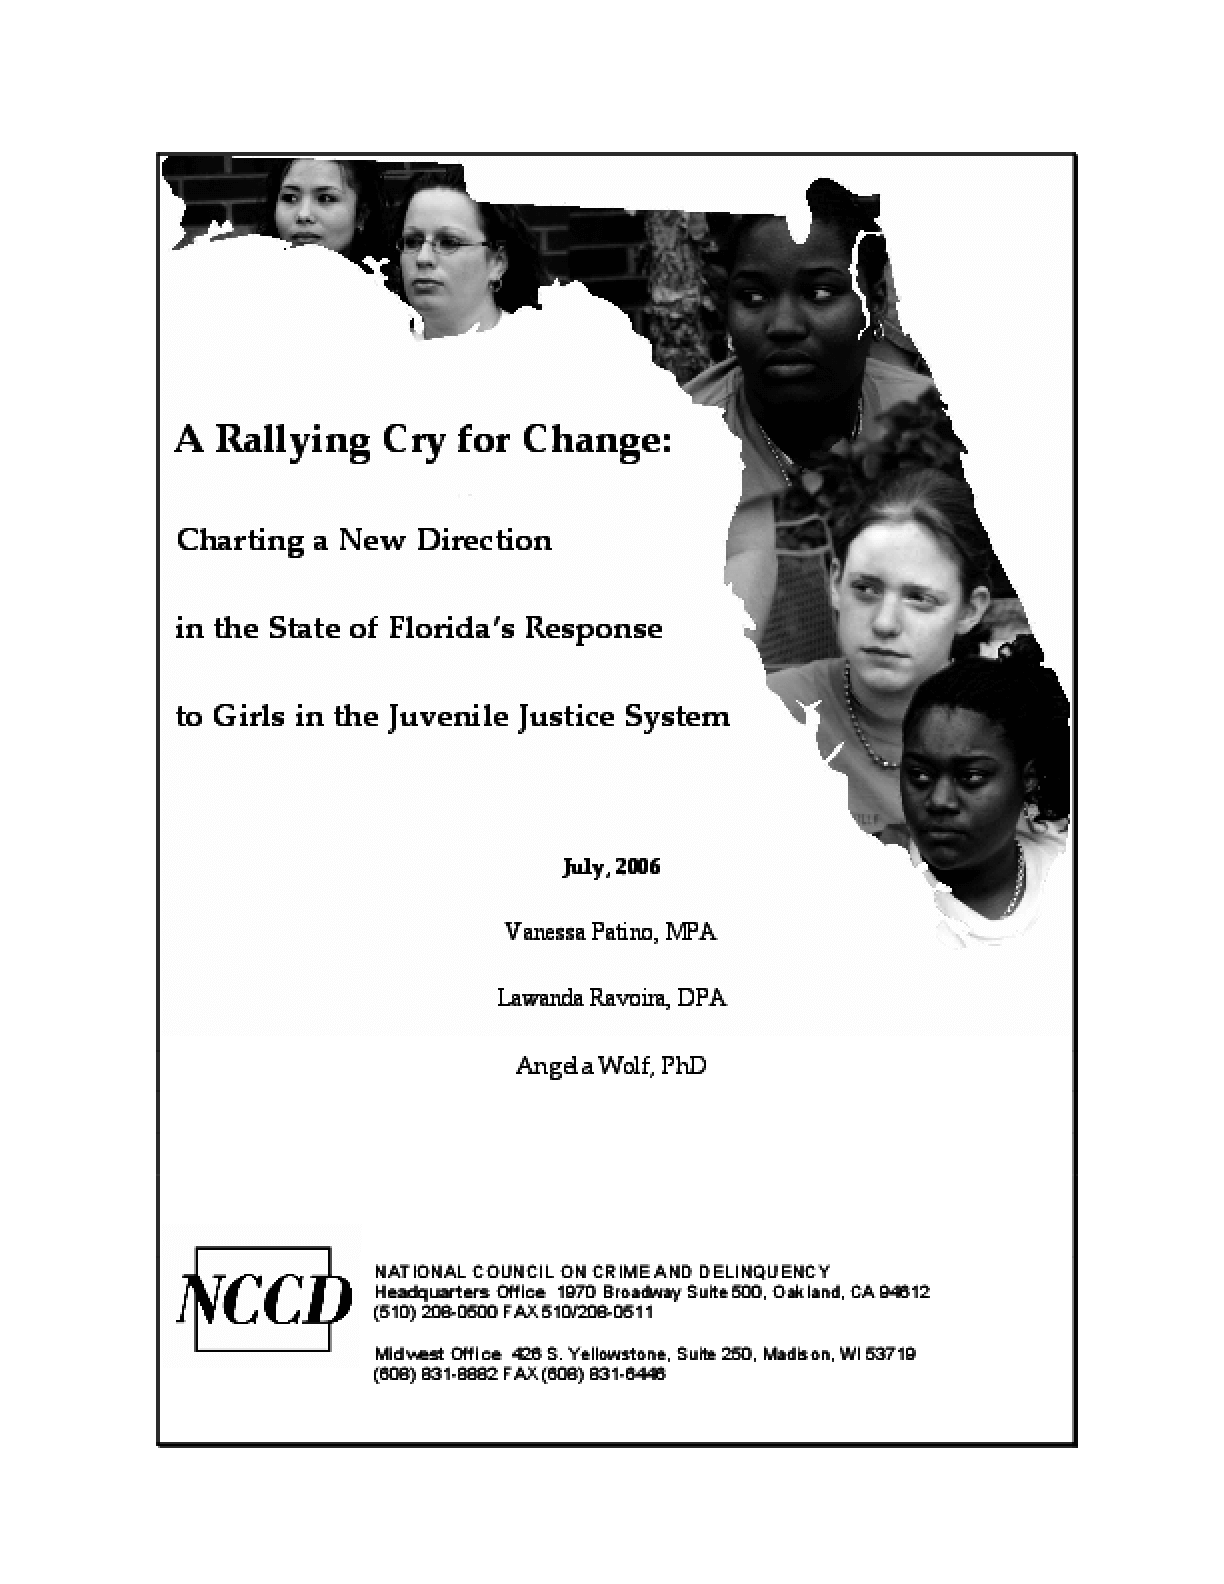 A Rallying Cry for Change: Charting a New Direction in the State of Florida's Response to Girls in the Juvenile Justice System (Full Report)